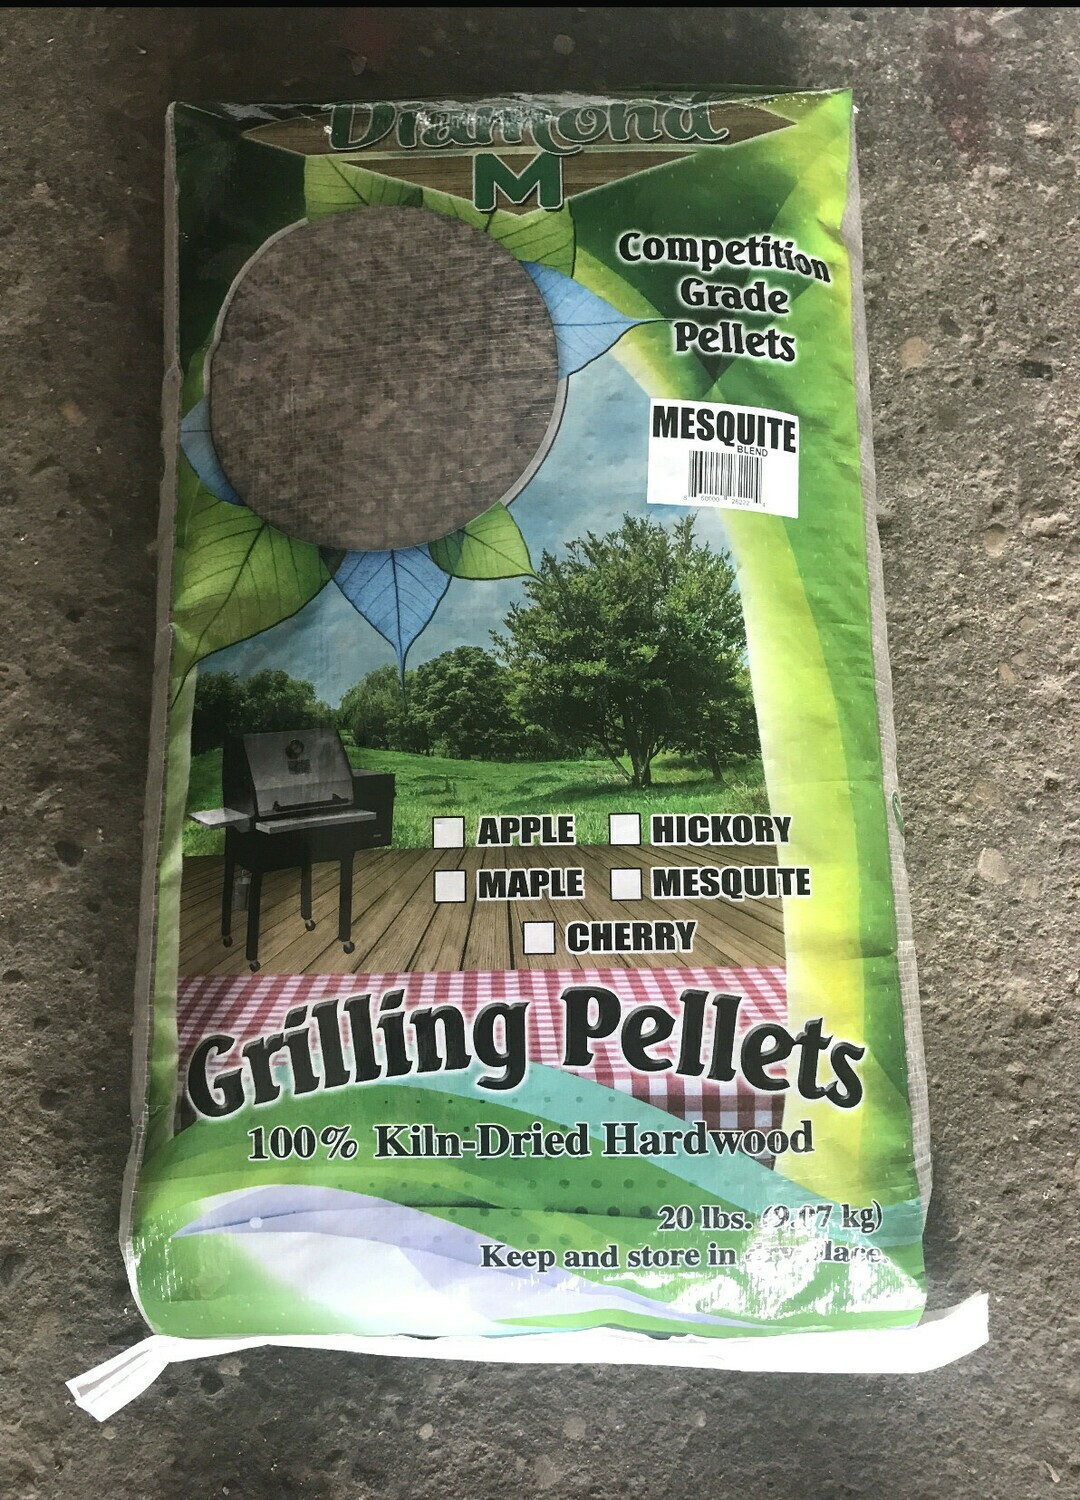 Diamond M Mesquite Blend Hardwood Grilling Pellets